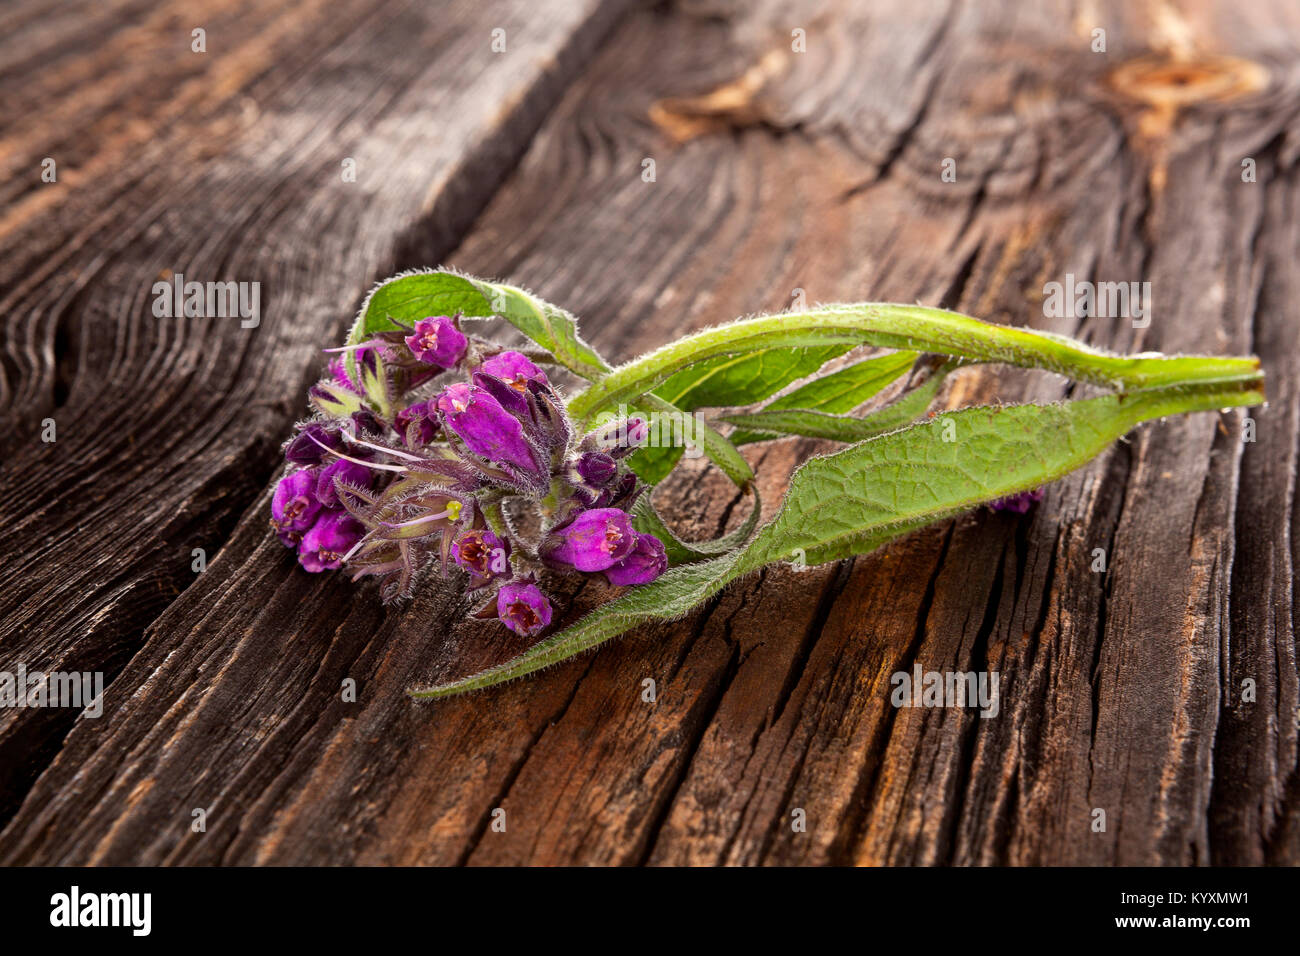 Comfrey flower with hairy leaves and purple nodding flowers on wooden table. - Stock Image